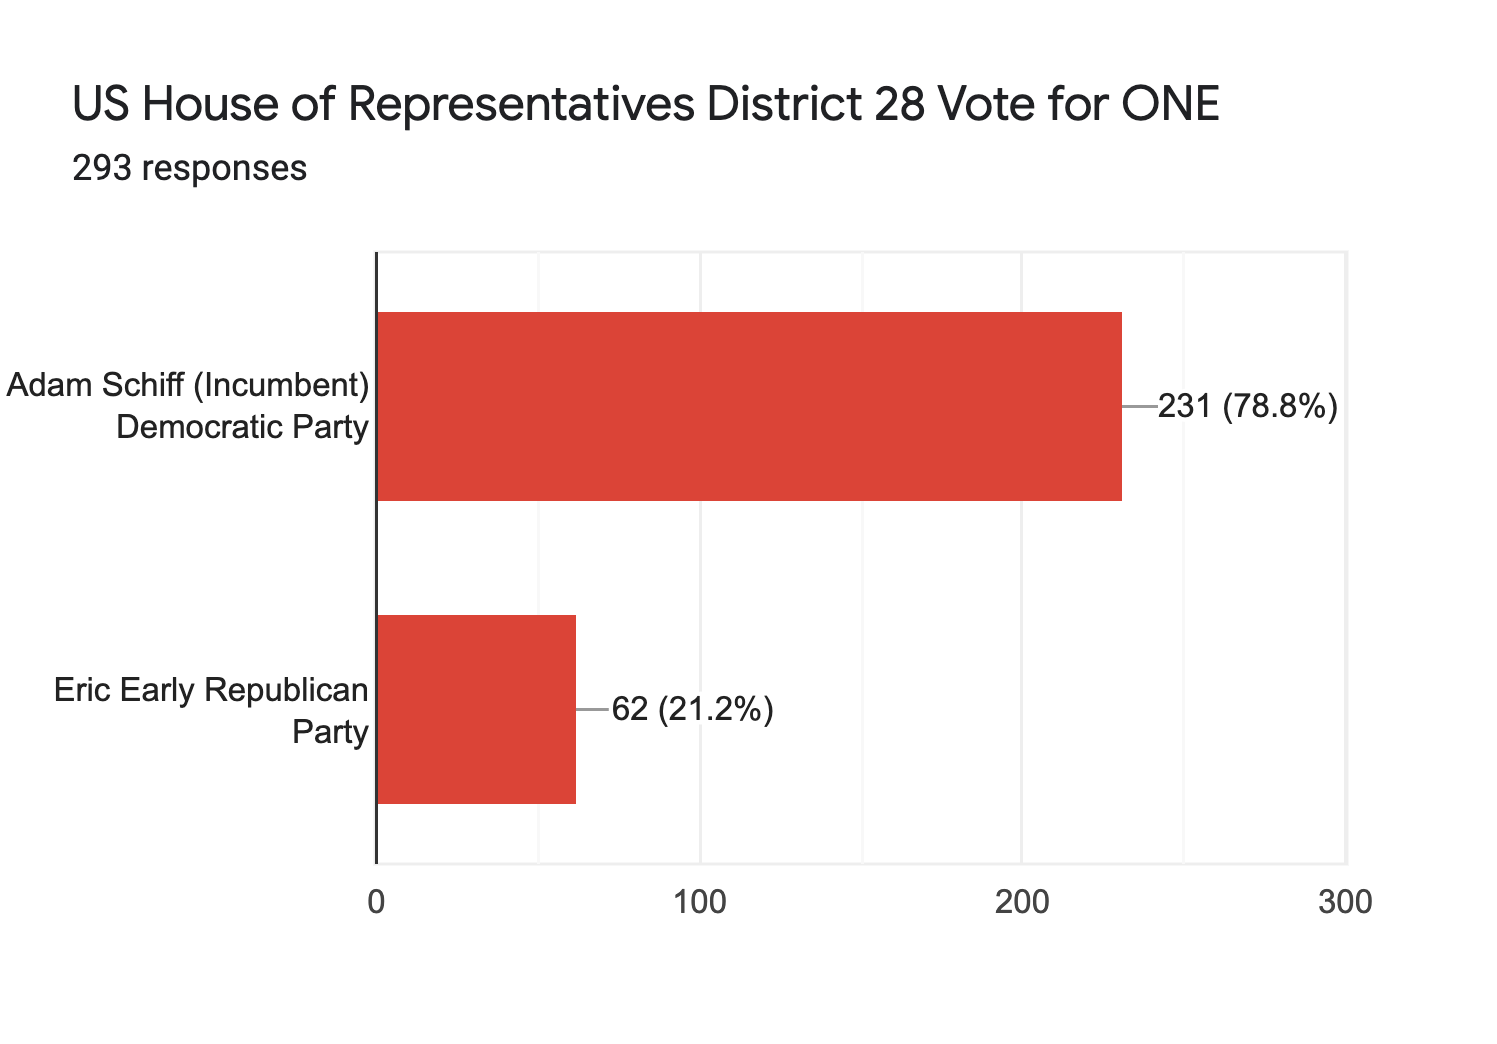 Forms response chart. Question title: US House of Representatives District 28 Vote for ONE. Number of responses: 293 responses.